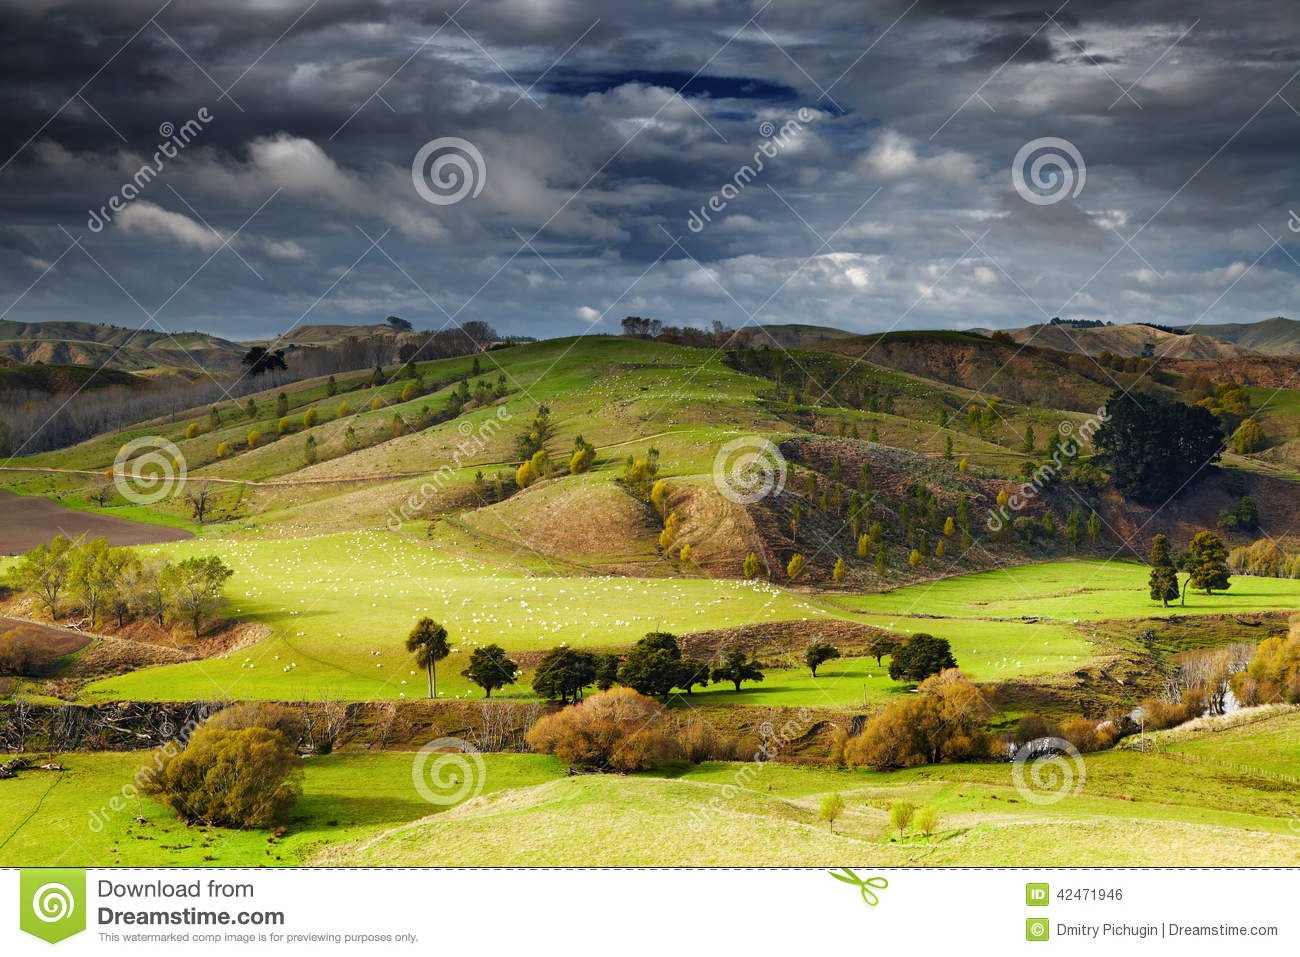 Landscape with farmland and cloudy sky, North Island, New Zealand.